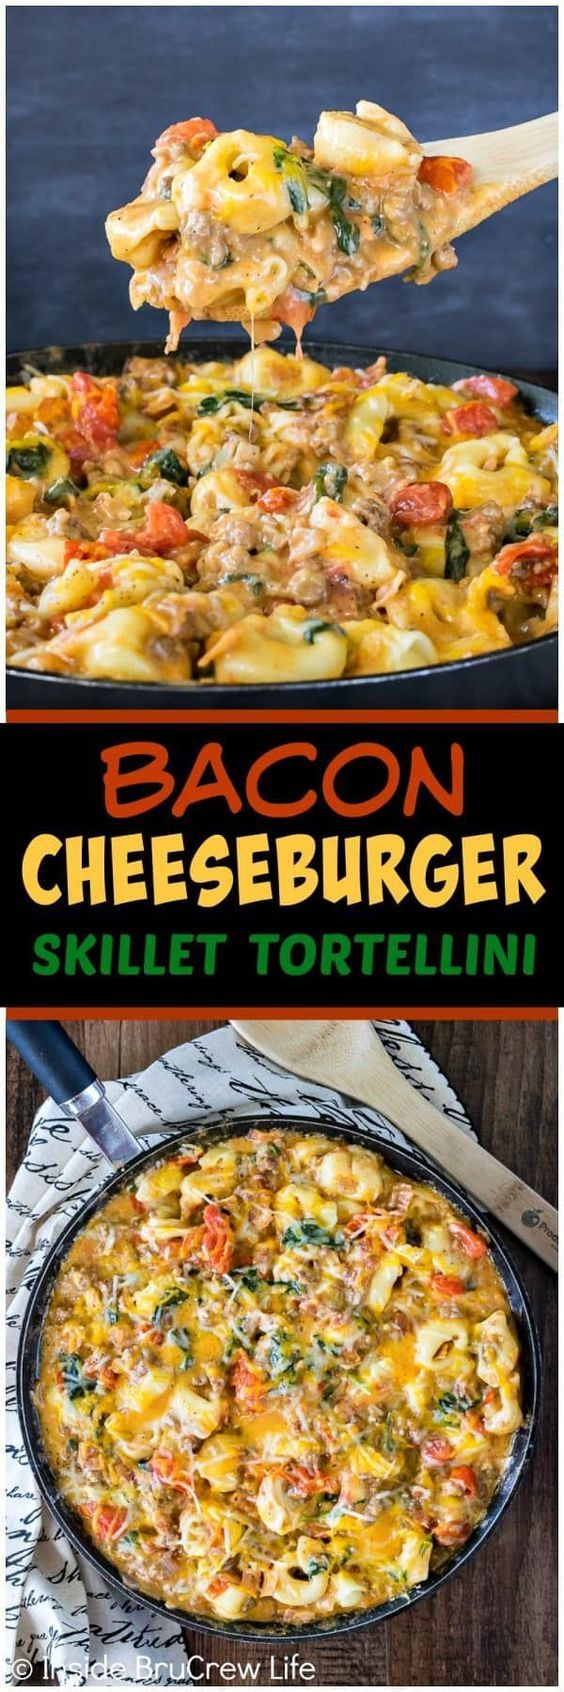 Bacon Cheeseburger Skillet Tortellini - this quick and easy pasta dinner is loaded with meats, veggies, and cheese. Great 30 minute dinner recipe for busy nights! #dinner #bacon #pasta #30minutemeal #porkcheckoff #realpigfarming #ad